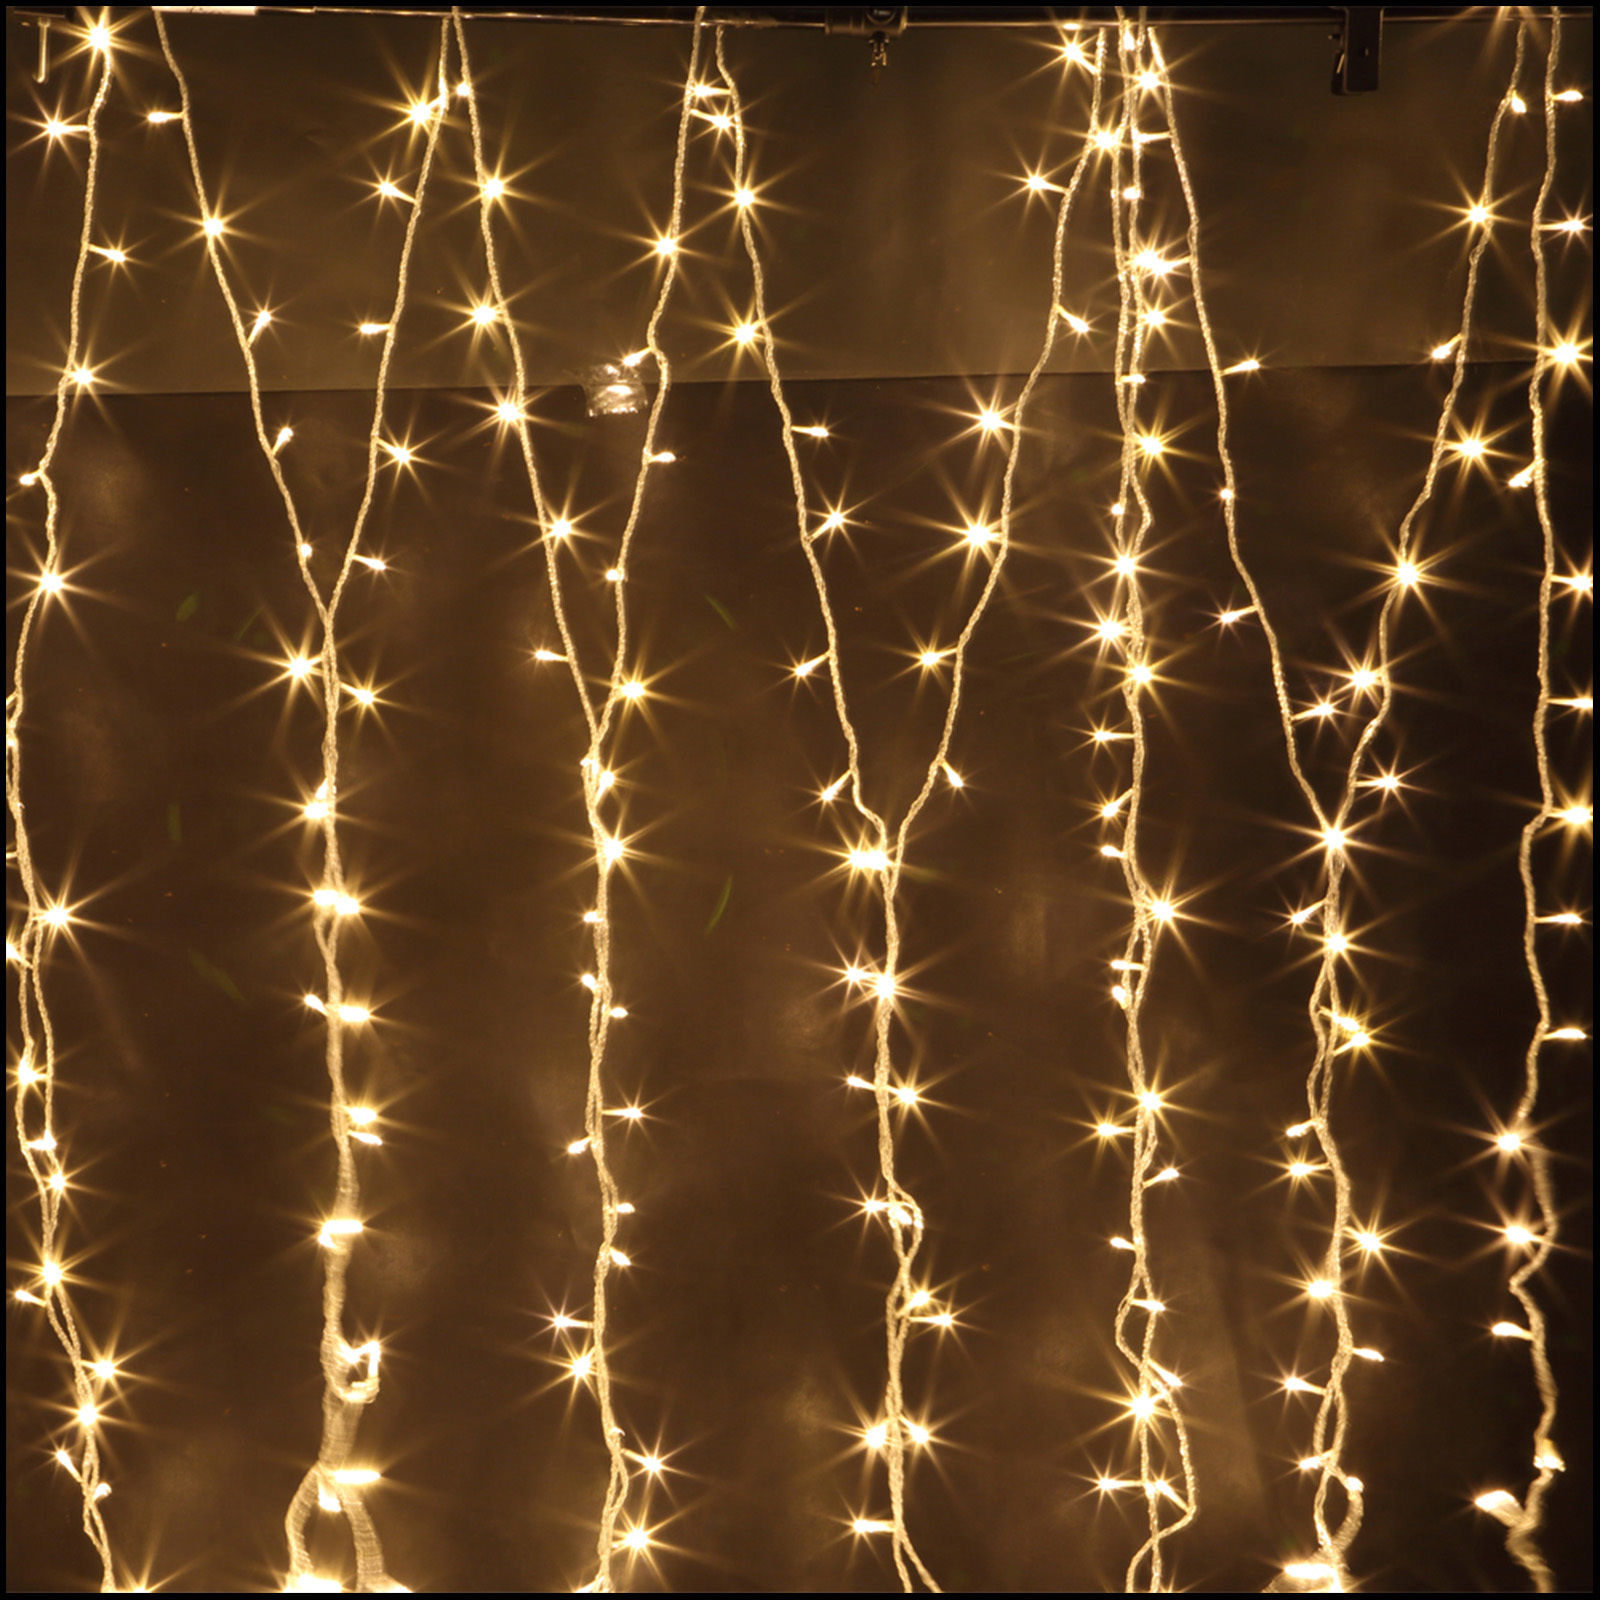 Halloween String Lights Outdoor : 200-1000 LED Fairy String Light Party Christmas Wedding Halloween Outdoor Xmas eBay